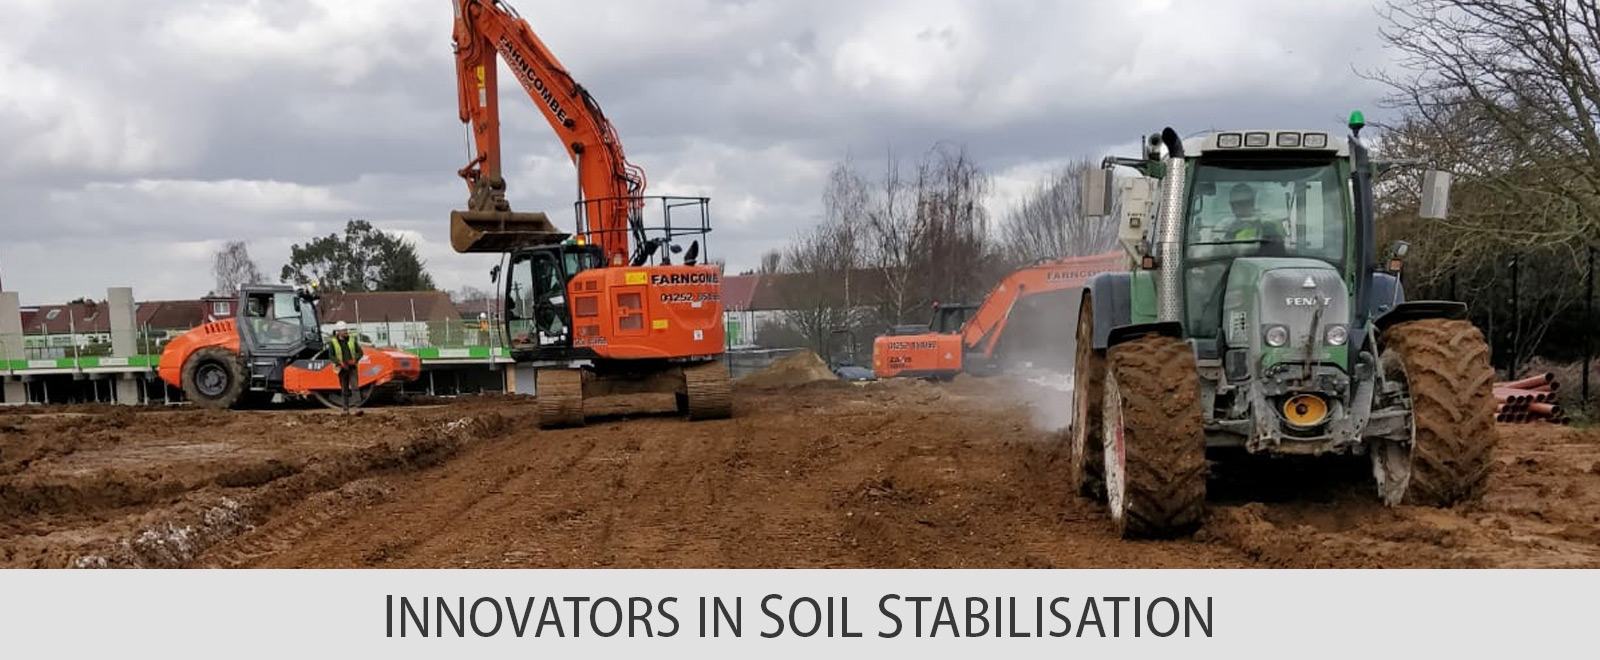 INNOVATORS IN SOIL STABILISATION